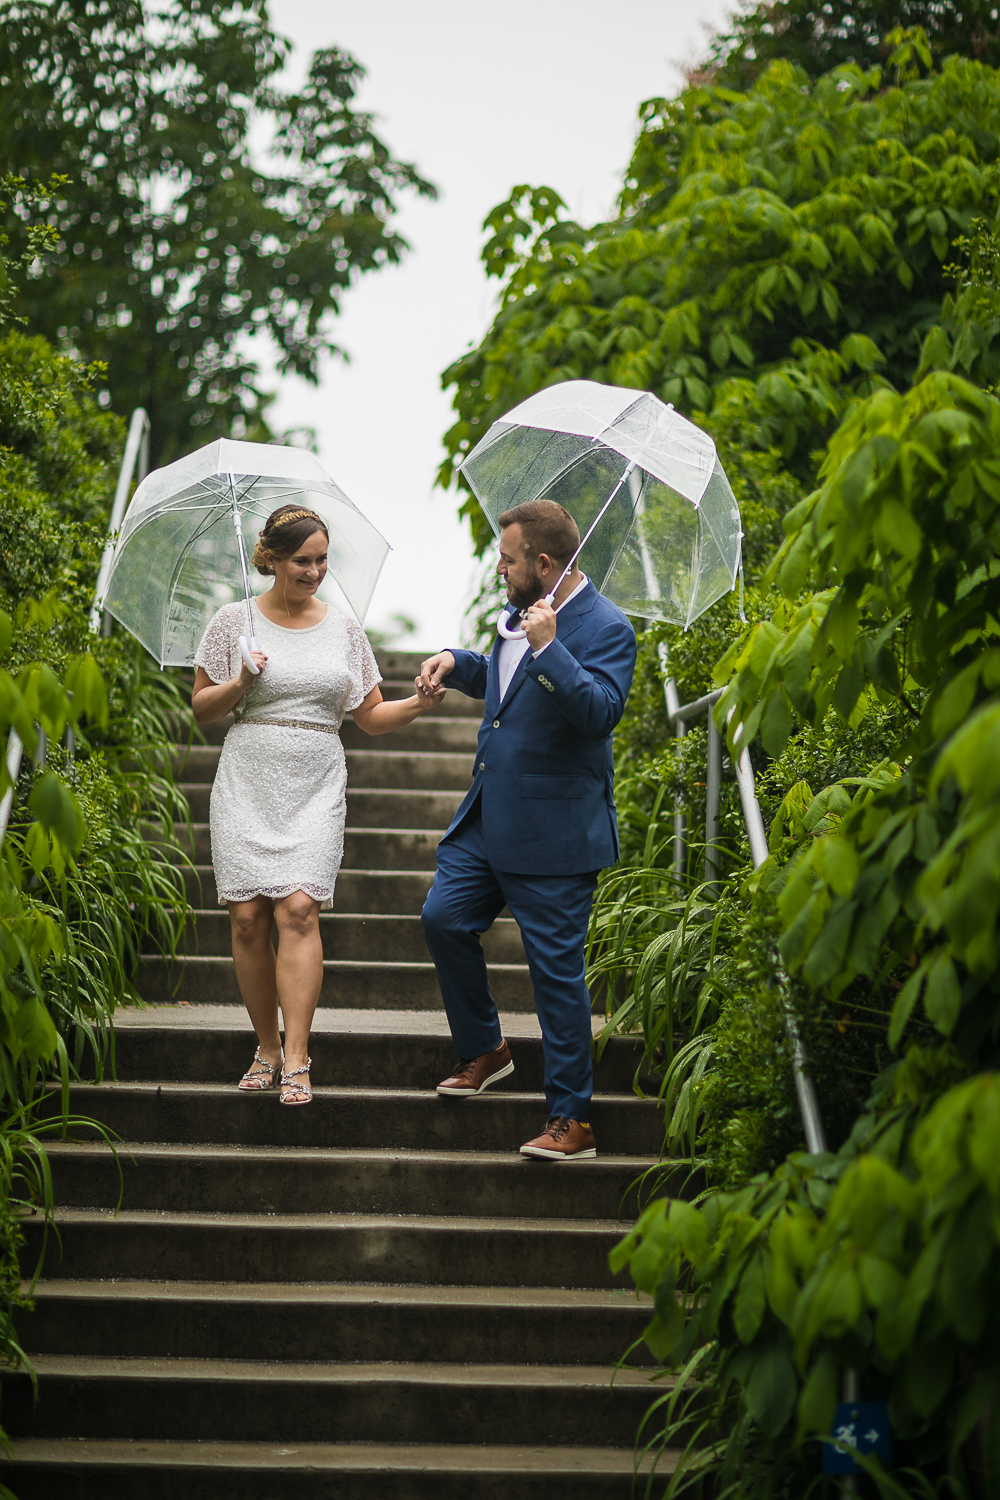 New York Bride in a short wedding dress and groom in a blue suit with clear plastic umbrellas in the rain. | Intimate Wedding at the Malthouse in Manhattan, New York City.